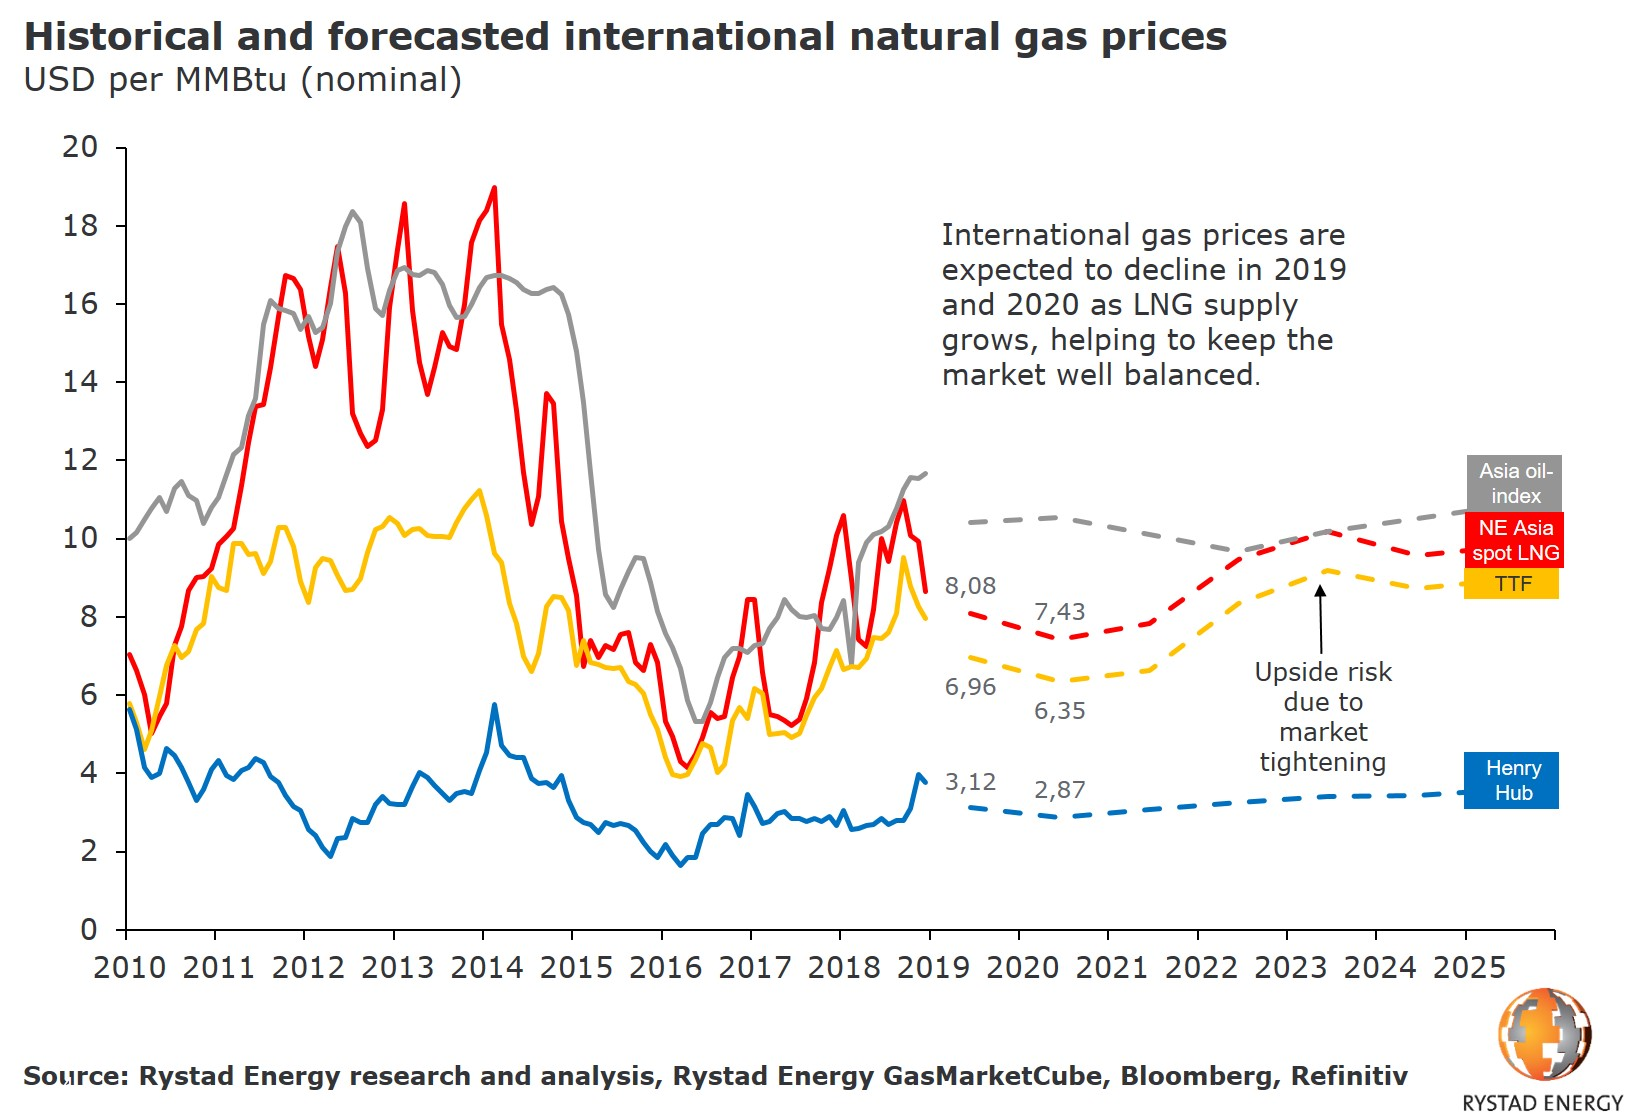 A graph showing the historical and forecasted international natural gas prices in USD per MMbtu